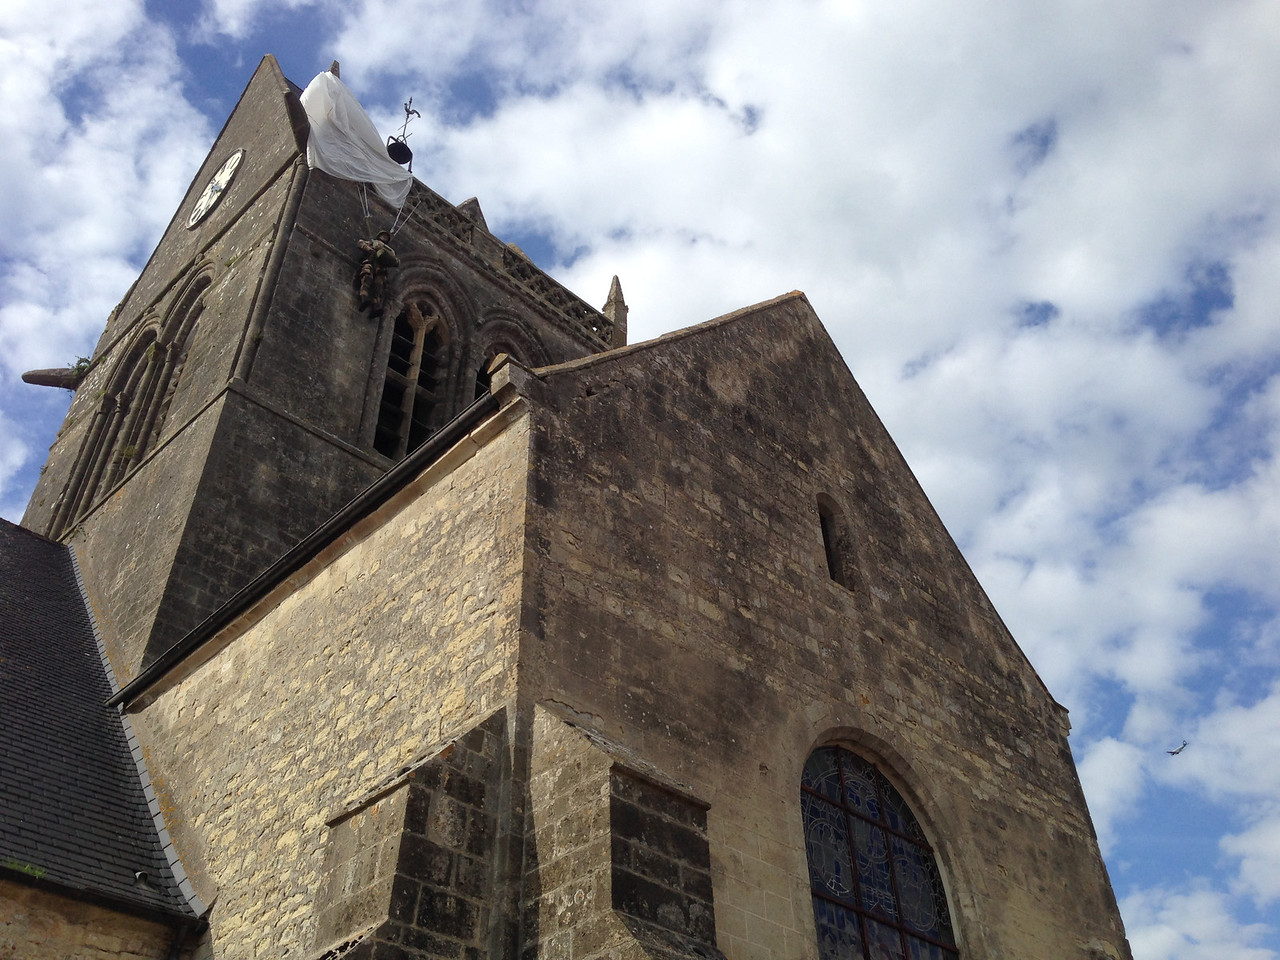 St. Mere Eglise, famous for this scene. On June 6, 1944, a parachutist named John Steele hung for several hours when his chute was caught on part of the church roof. Every year the citizens of the town recreate this event to honor his and his comrades' sacrifices.